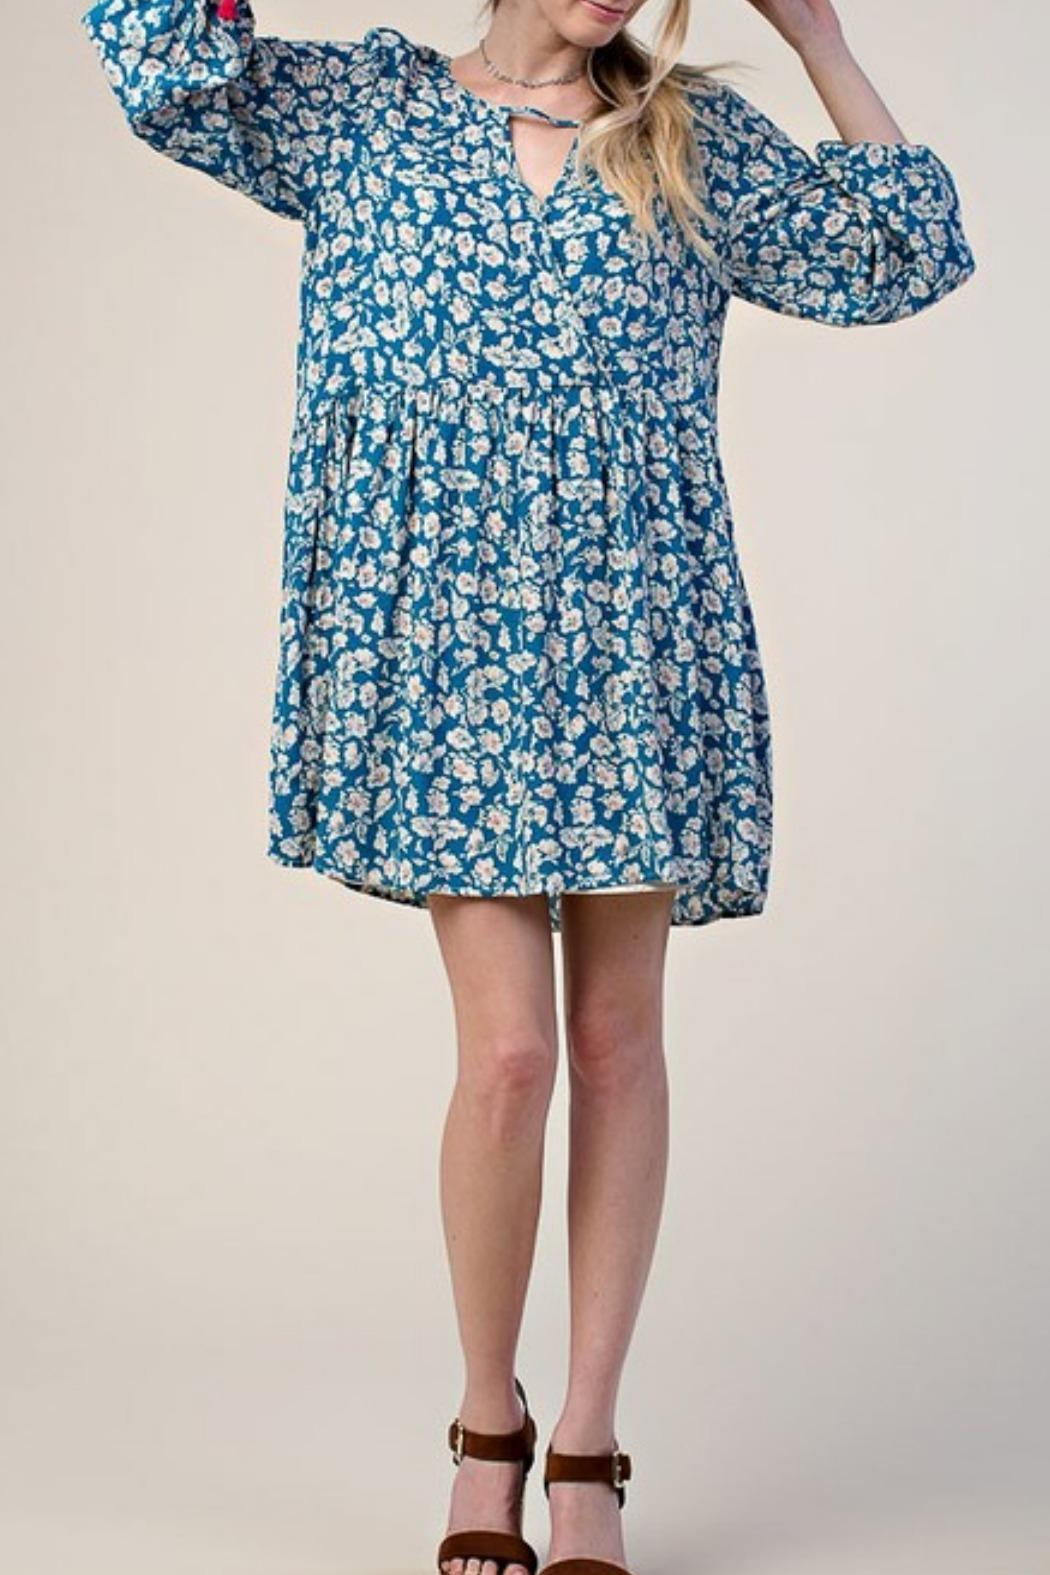 KORI AMERICA Blue Floral Dress - Front Cropped Image